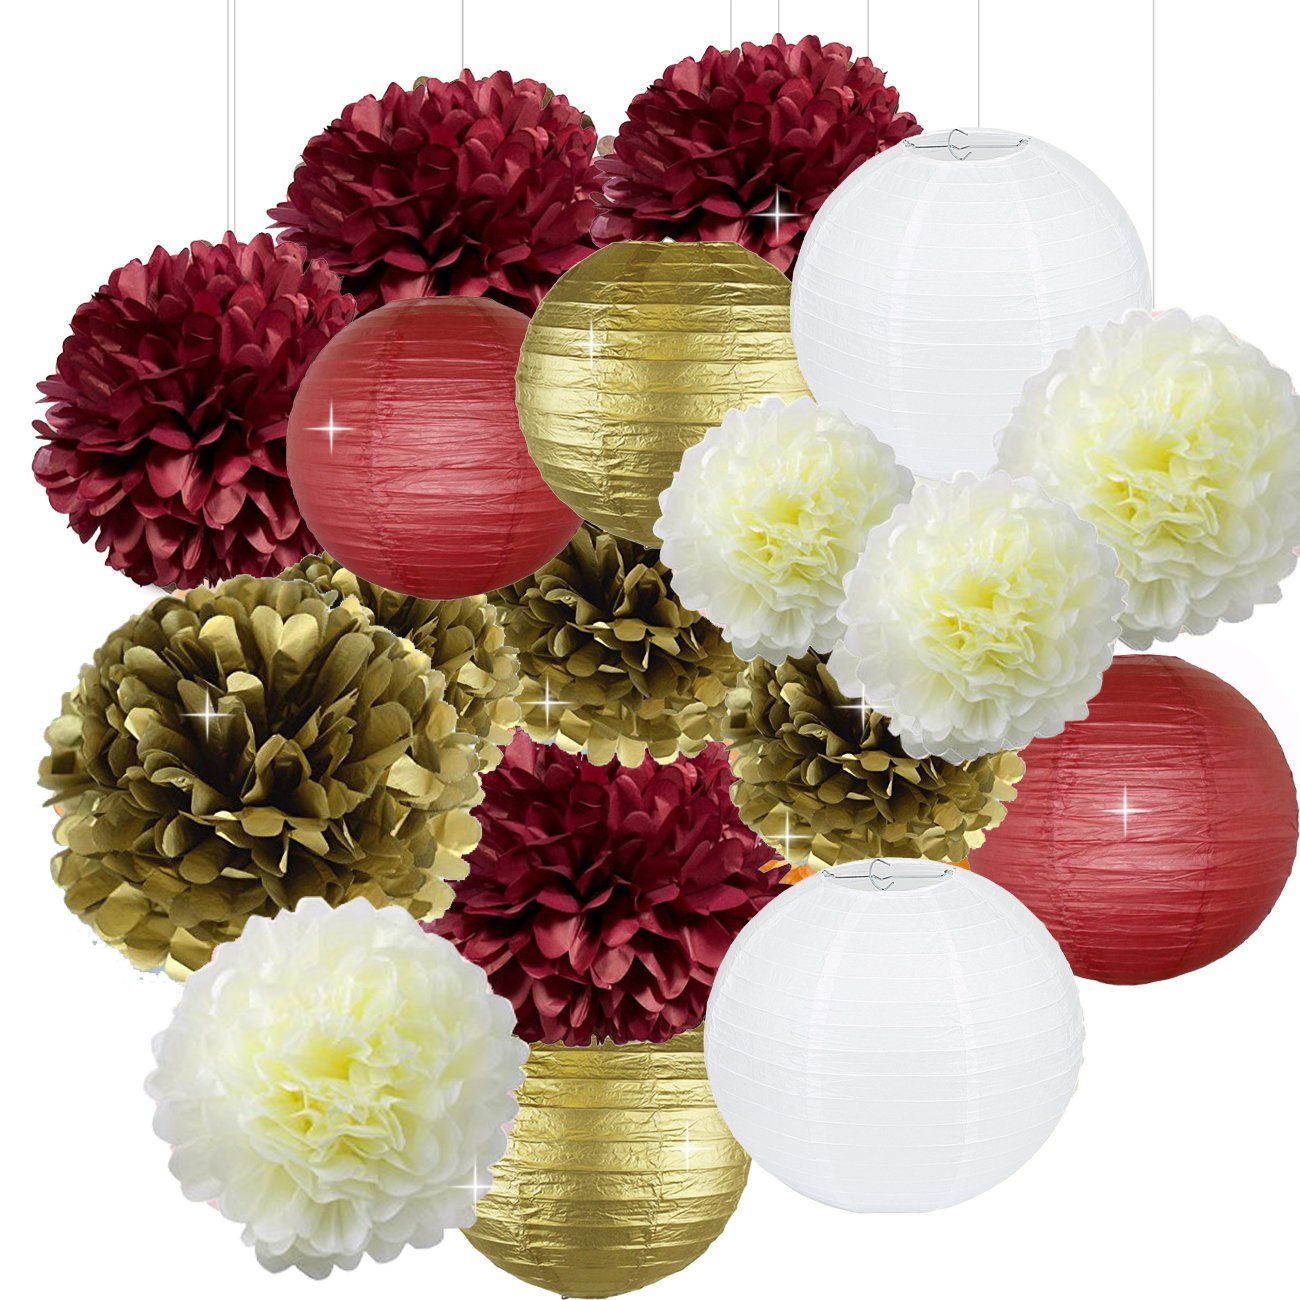 Bridal Shower Christmas Xmas Decorations 18pcs Burgundy Cream White Gold Birthday Decorations Tissue Paper Pom Pom and Paper Lanterns Photo Backdrop Wedding/Bachelorette Party Decorations Sogorge